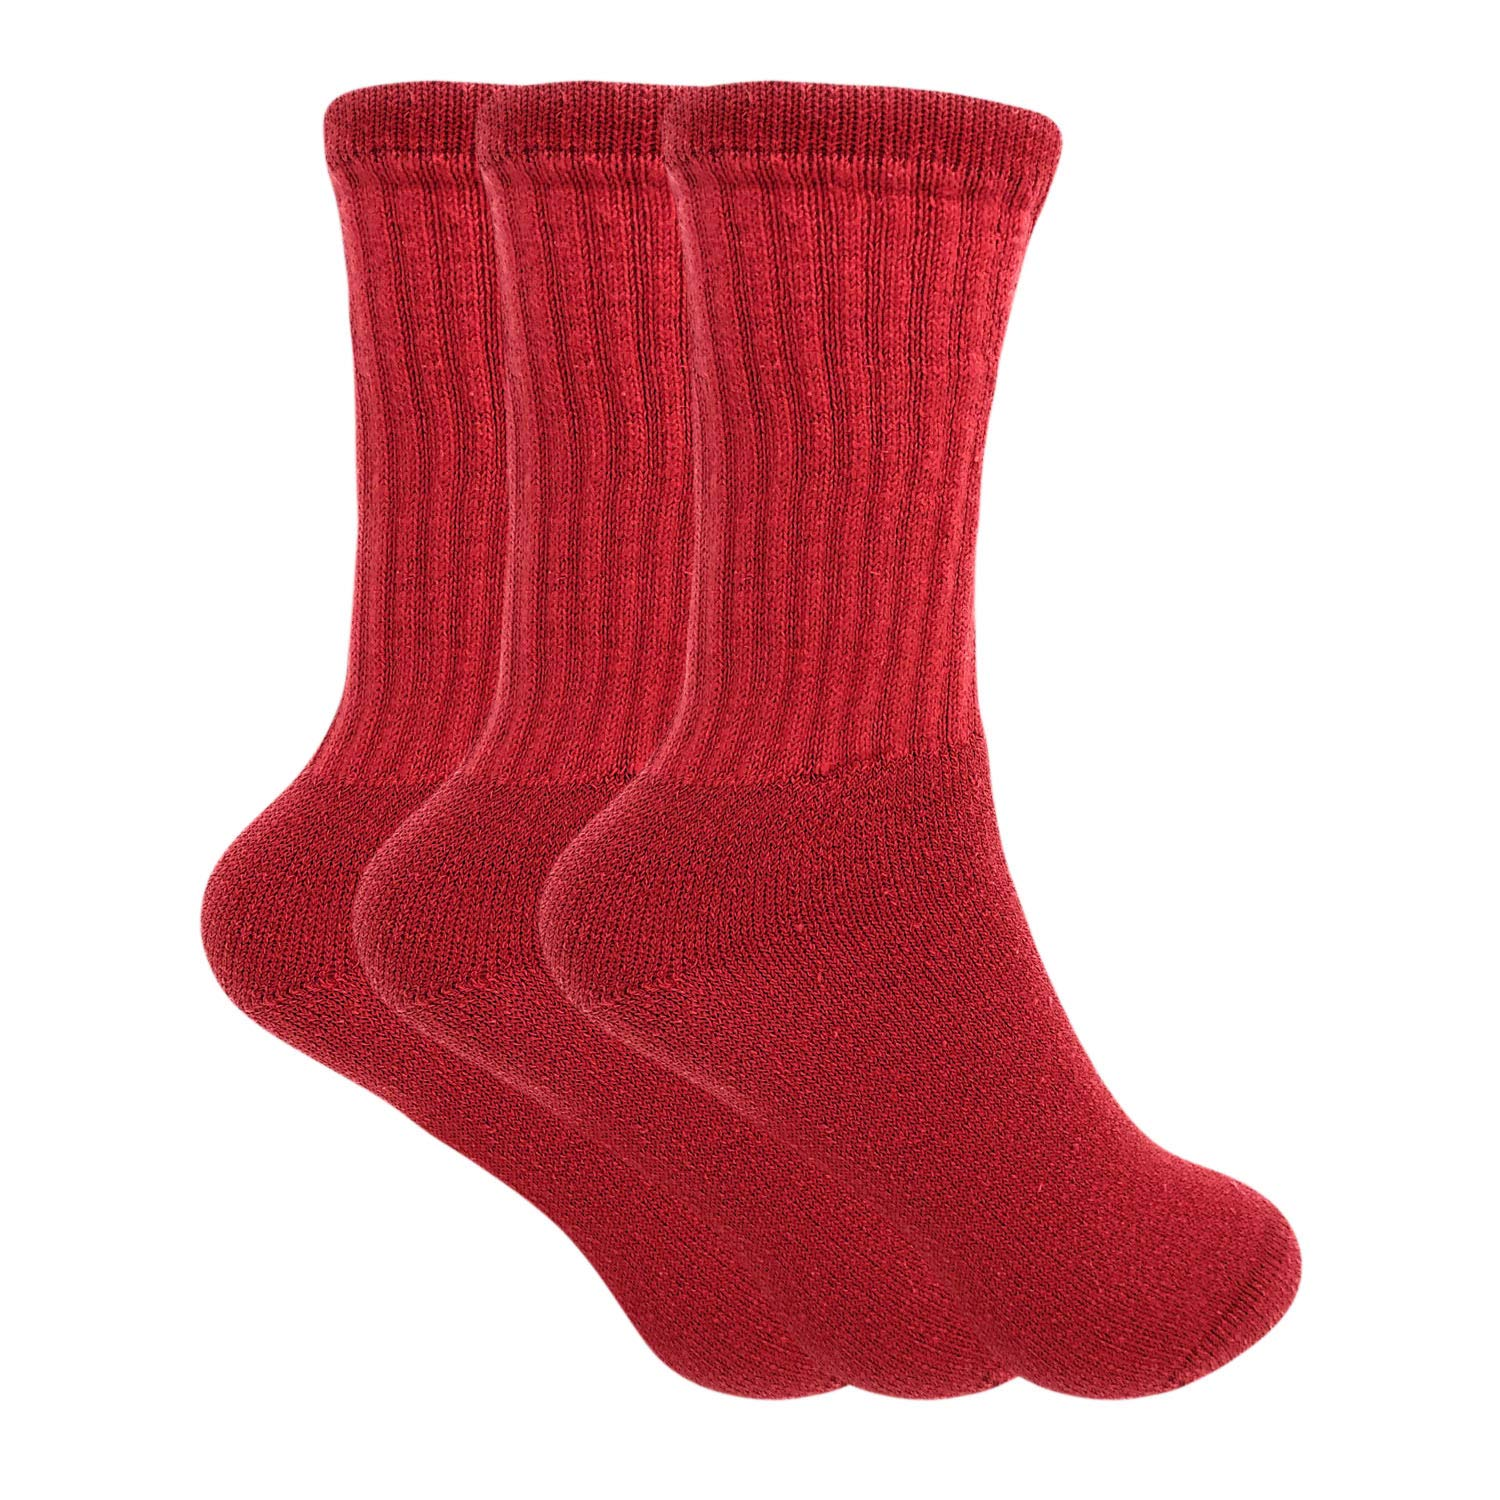 Red 3 Pack Cotton Crew Socks for Women Made in USA Smooth Toe Seam Socks